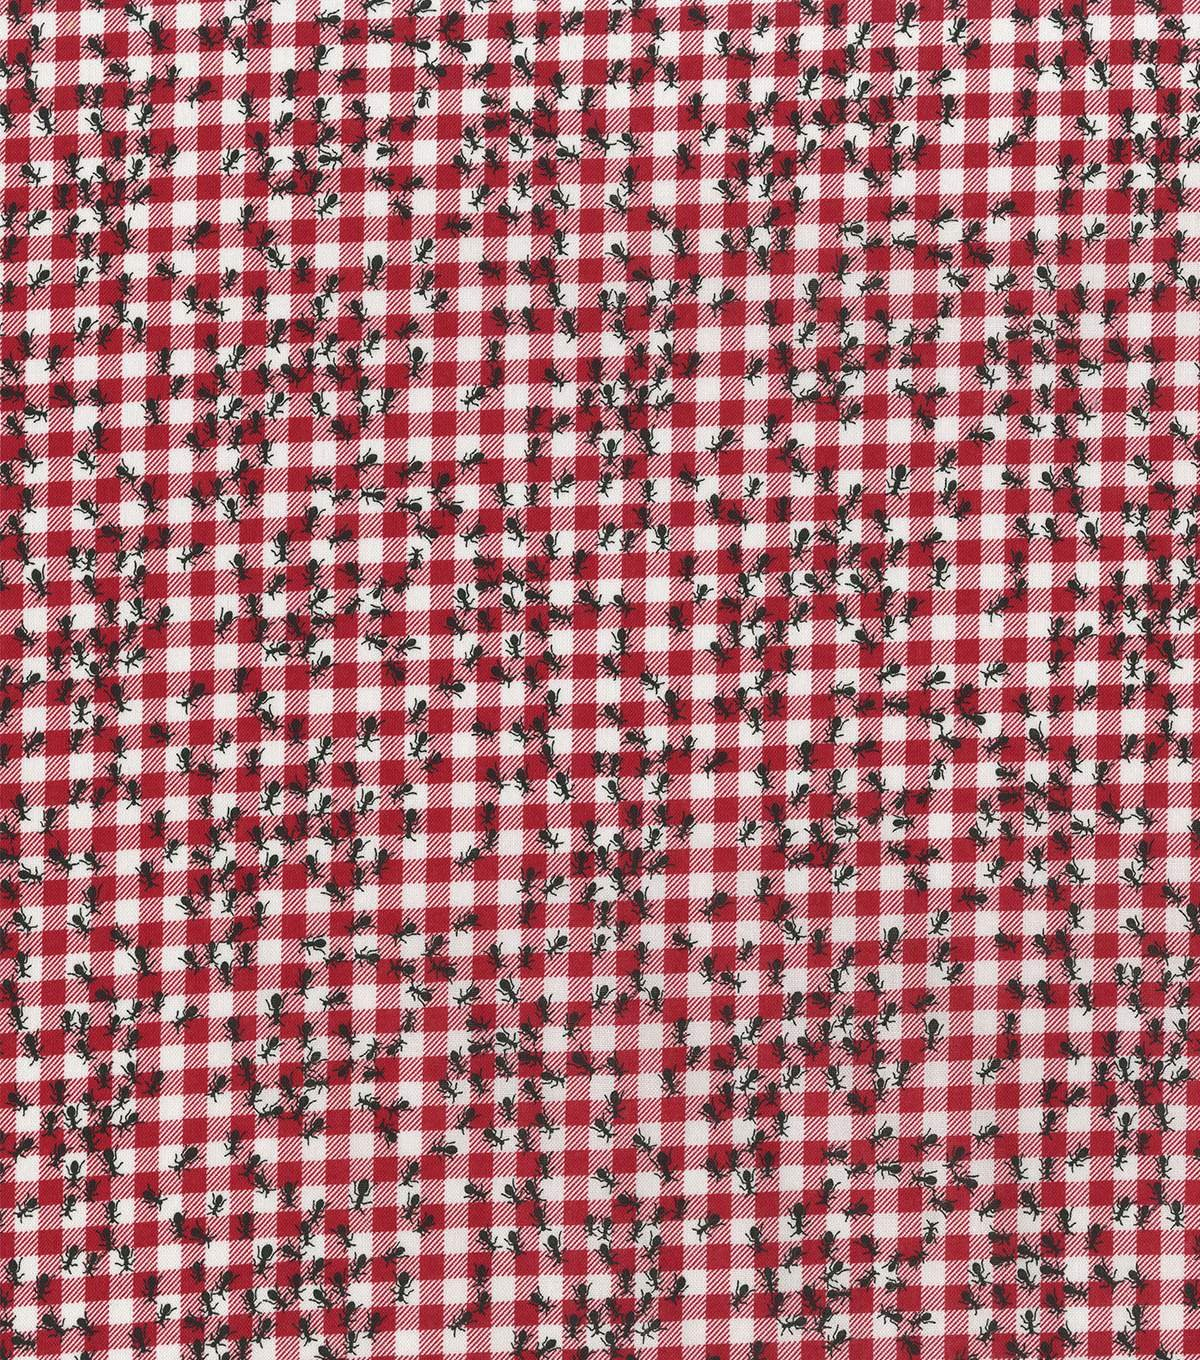 Ants on Gingham 6511 Red